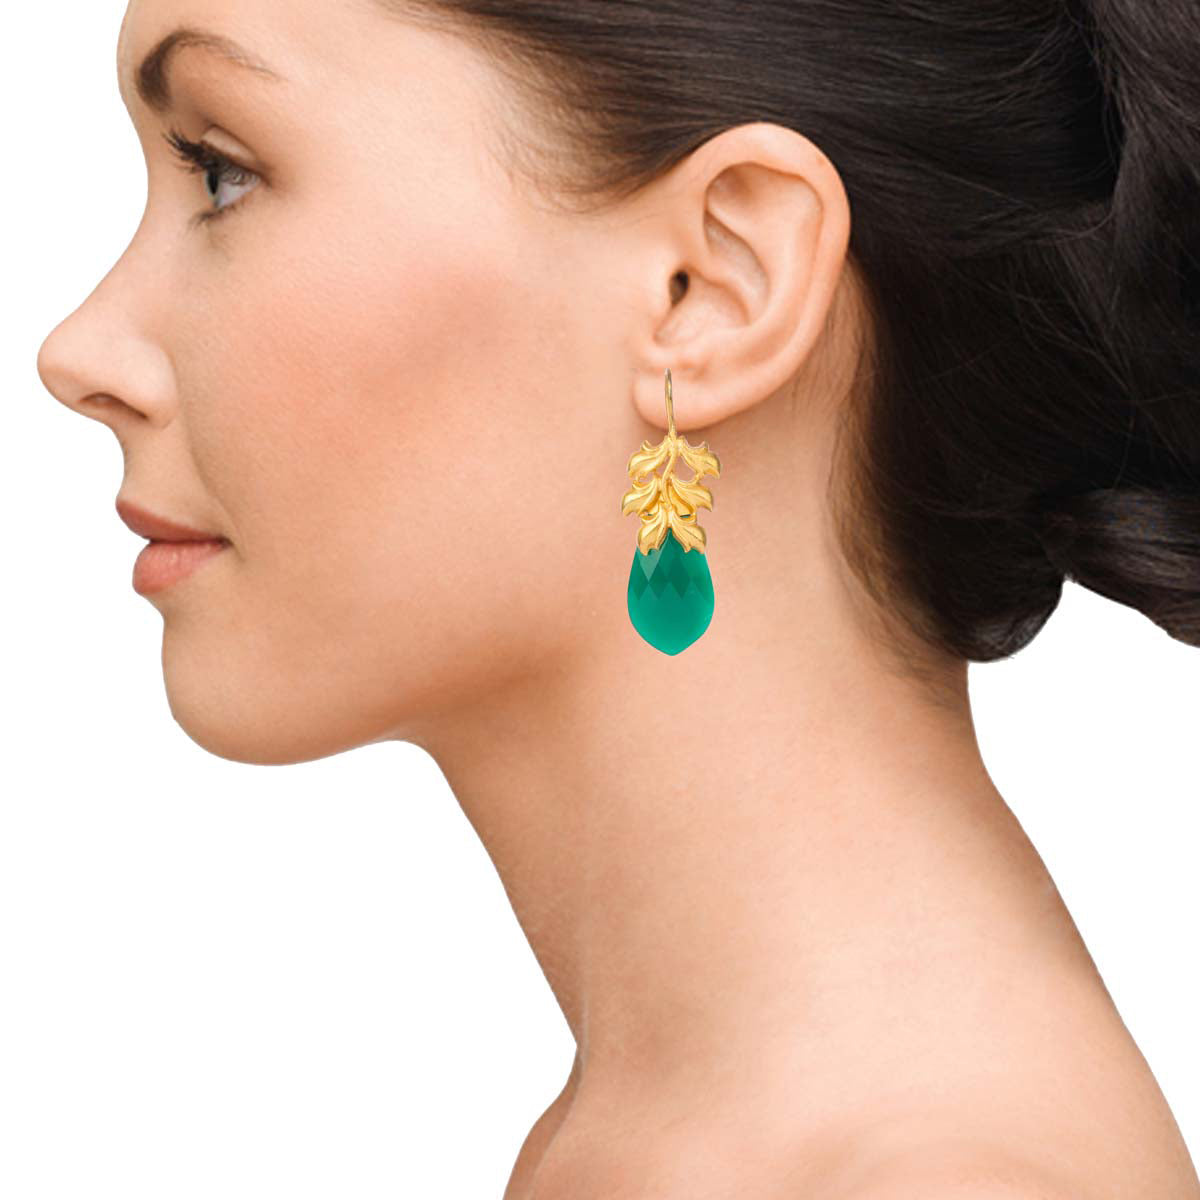 Gold Earrings With Green Drops